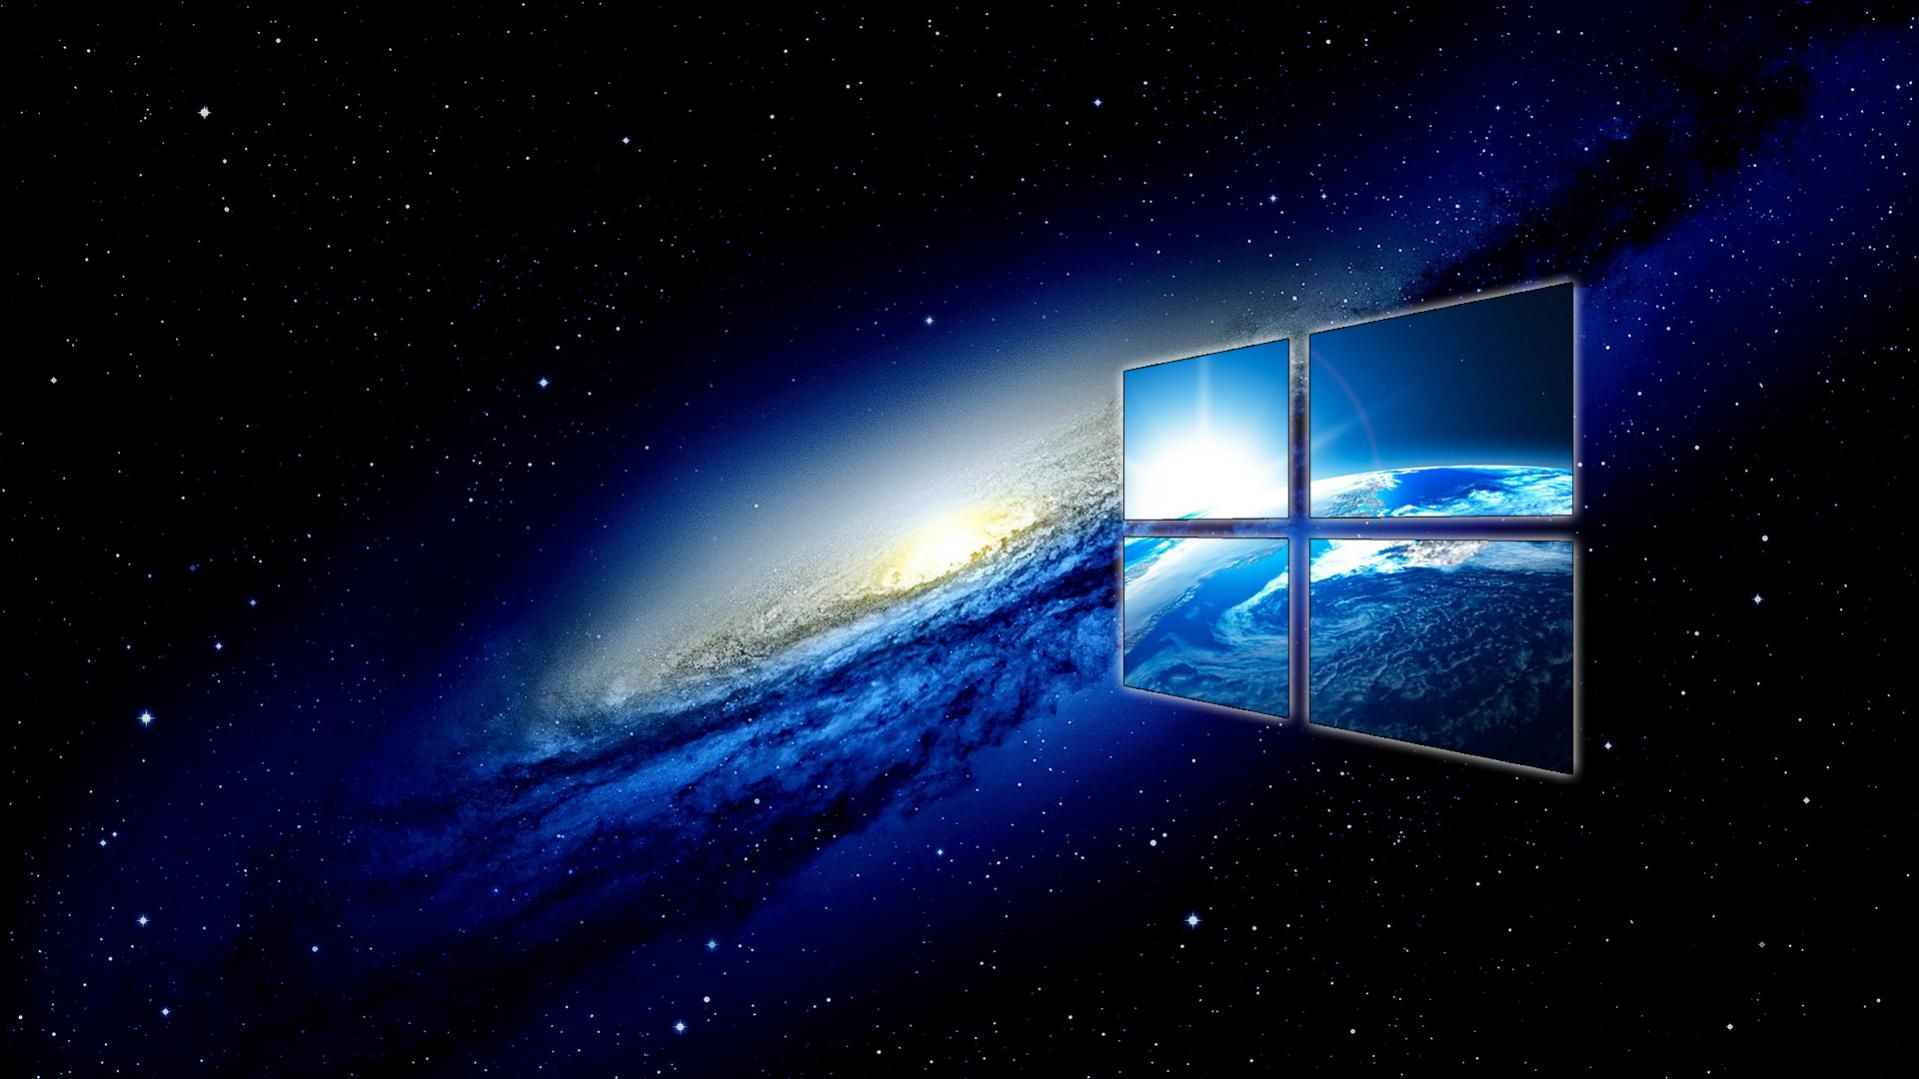 Windows 10 Wallpaper For Desktop Background ا In 2019 Windows